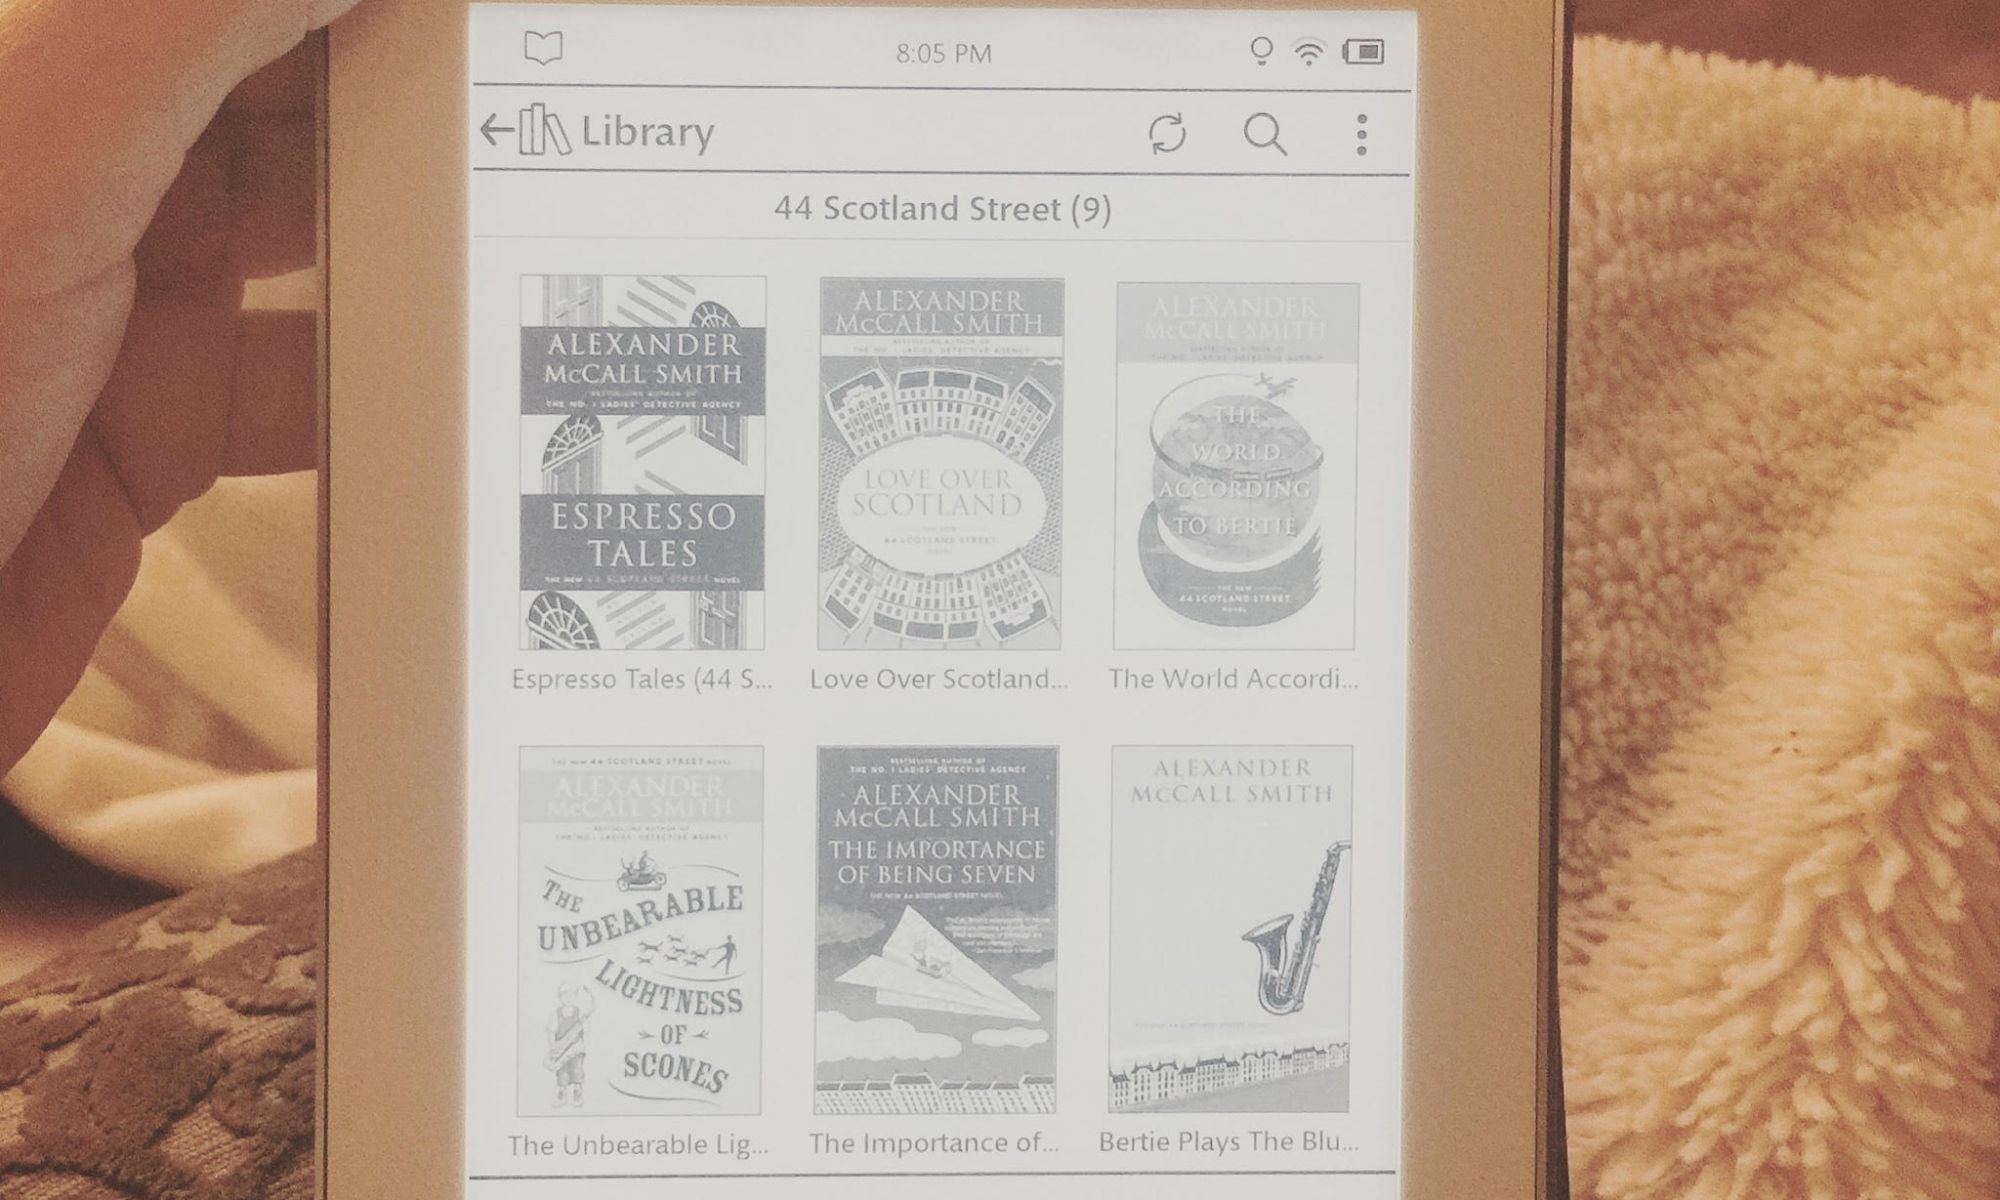 On reading the 44 Scotland Street Series